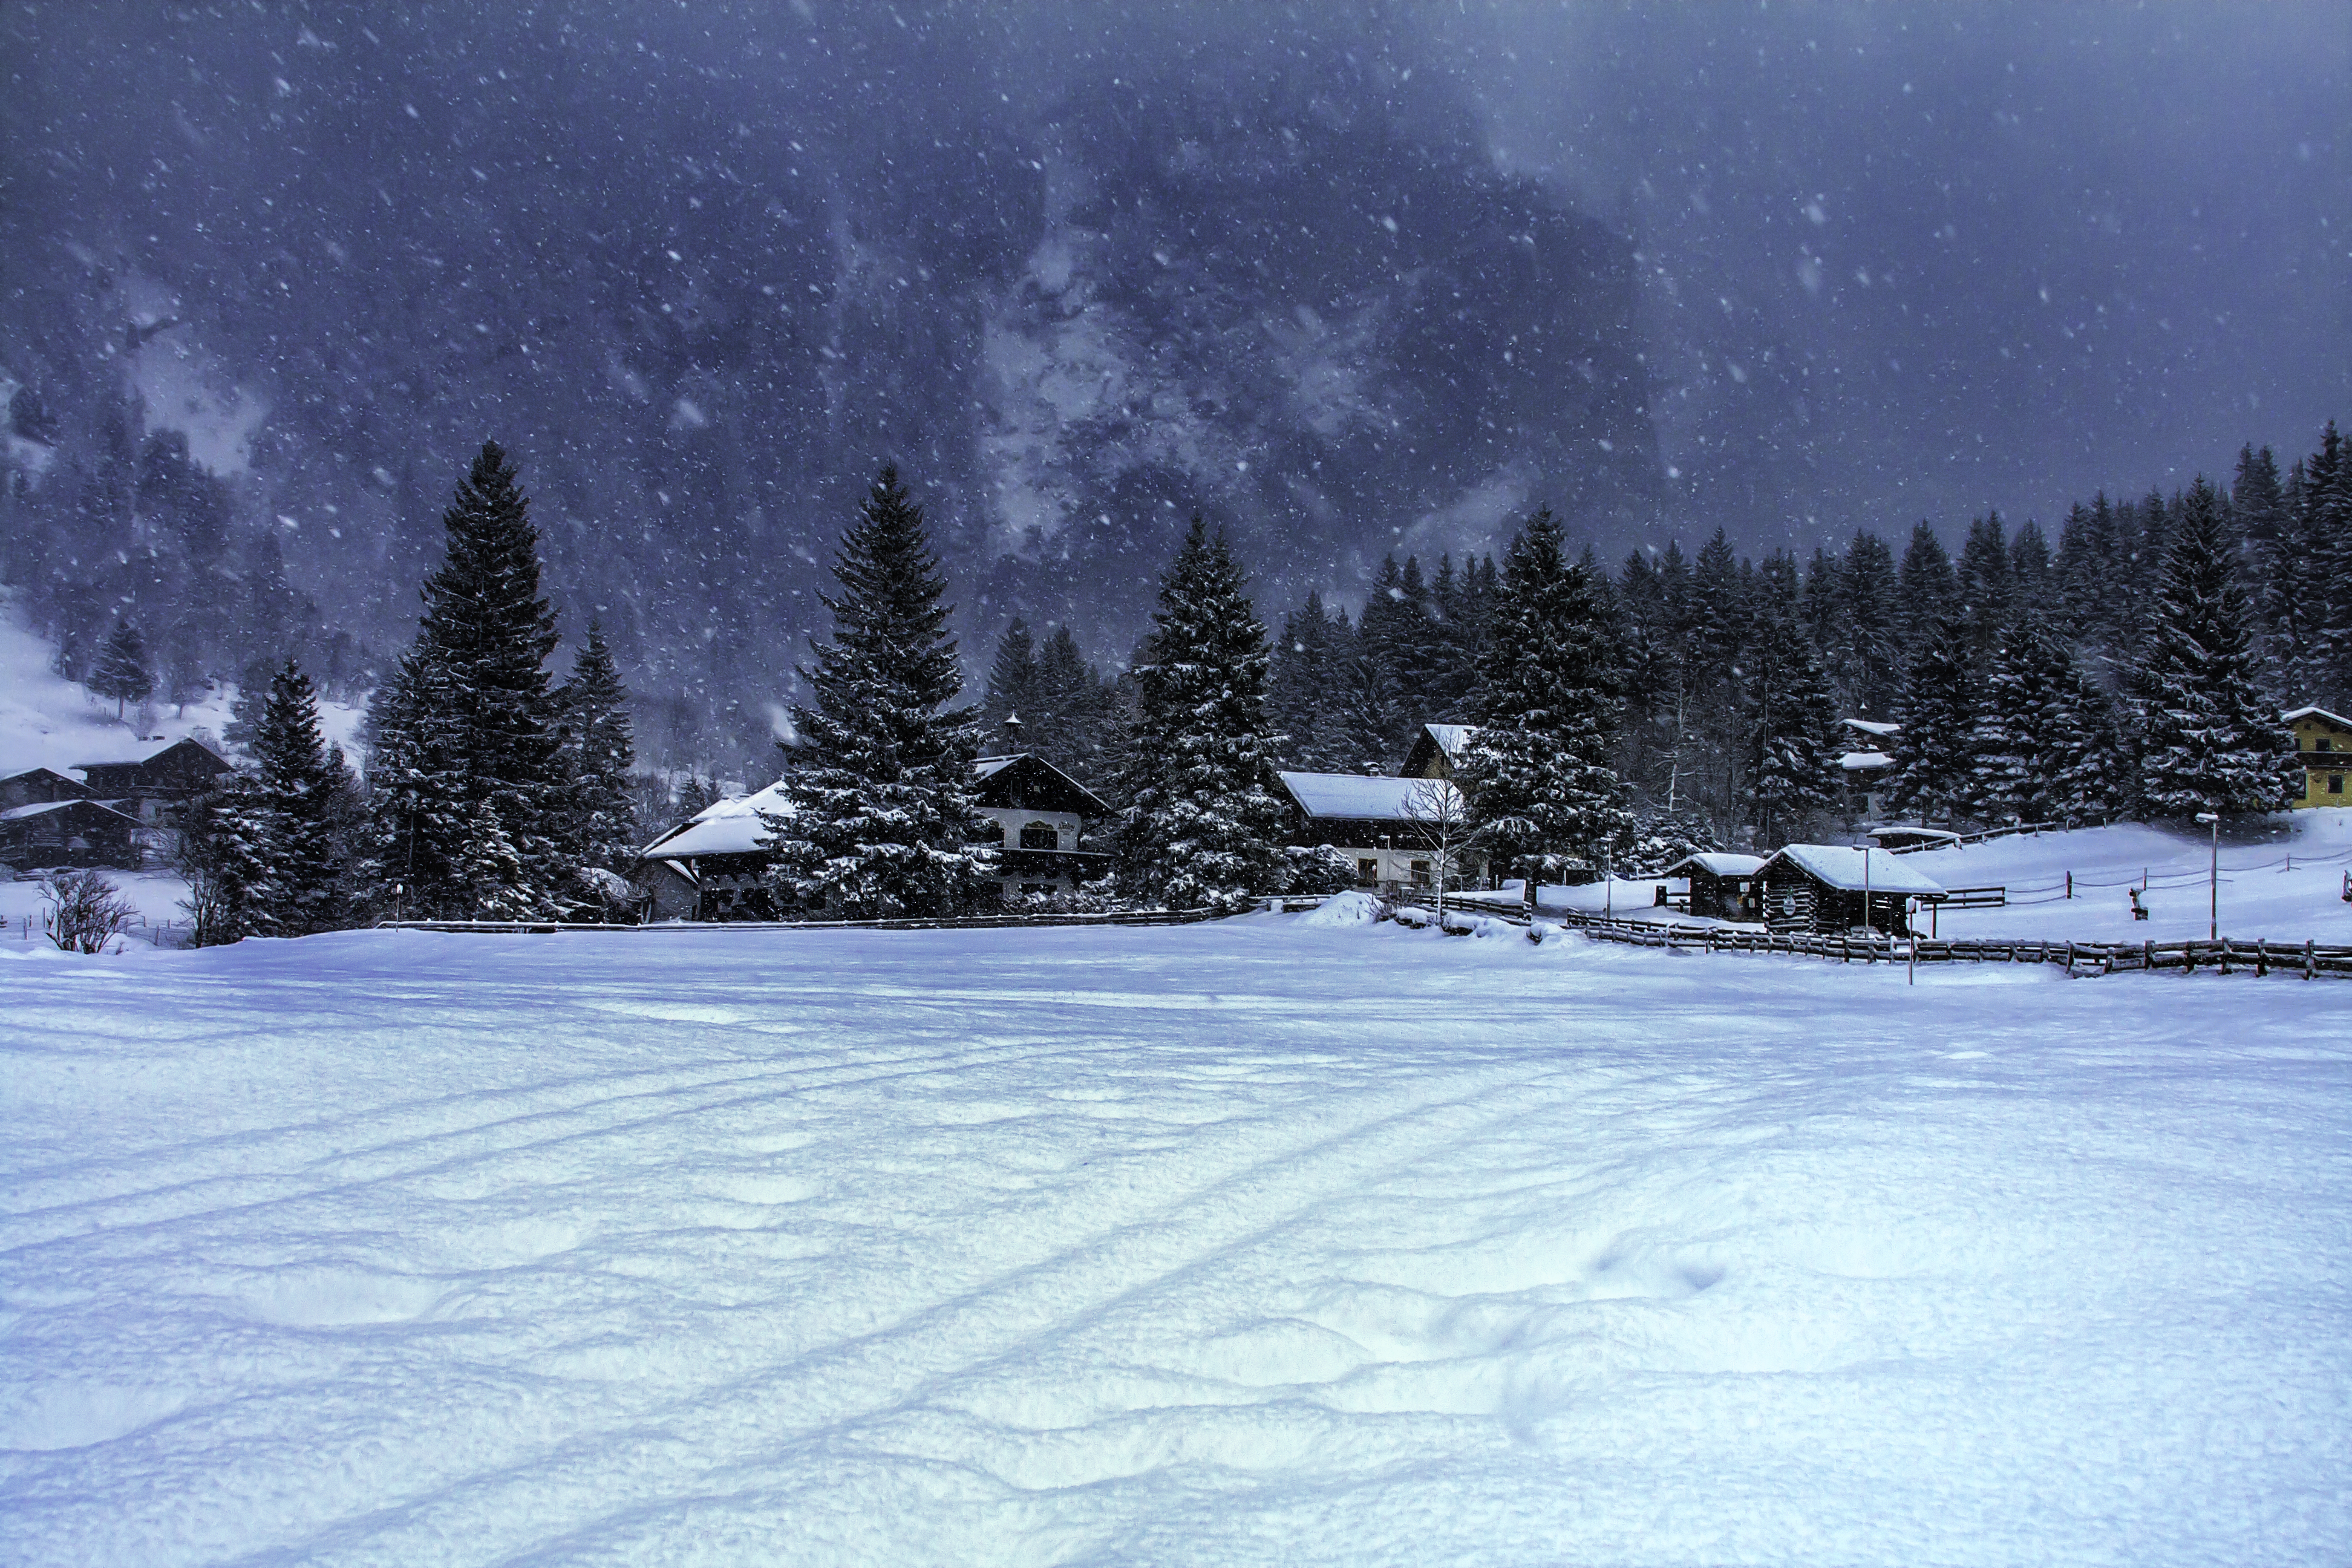 Mountain landscape with snow.